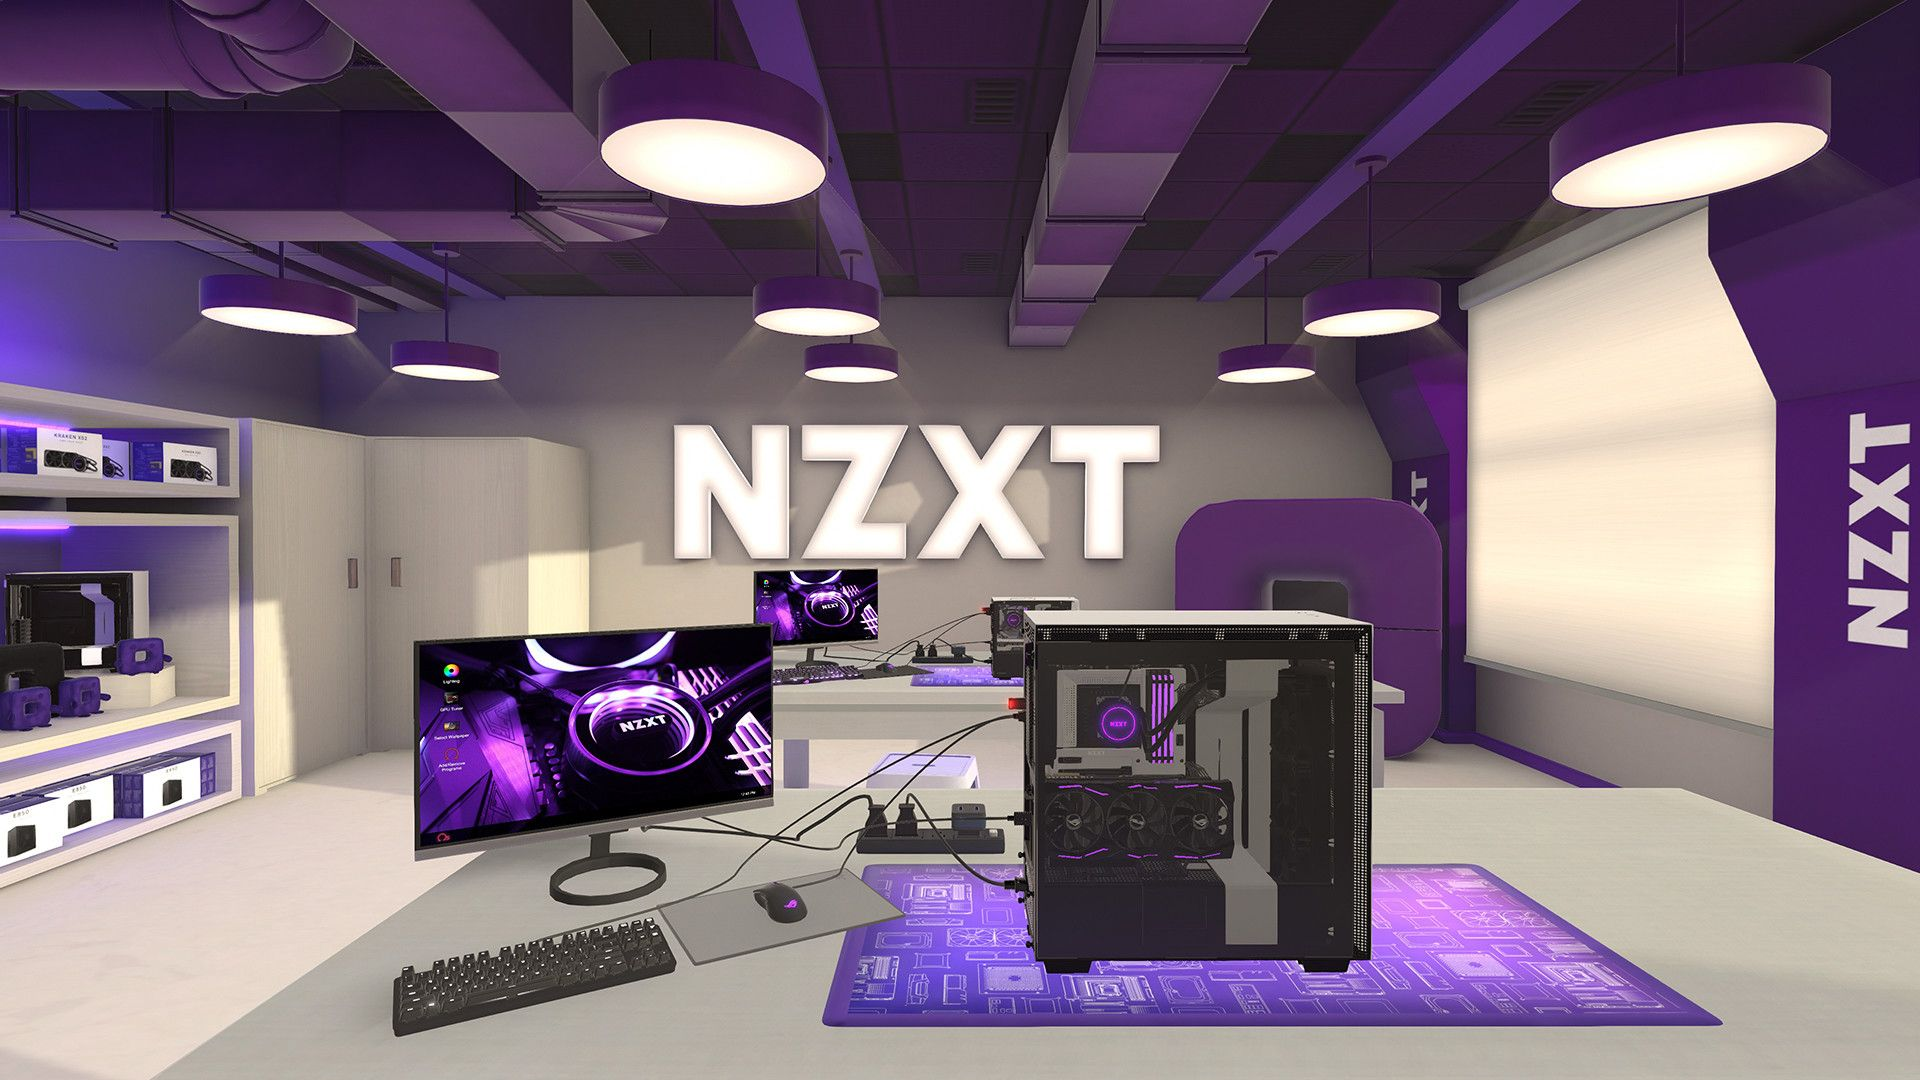 NZXT Workshop